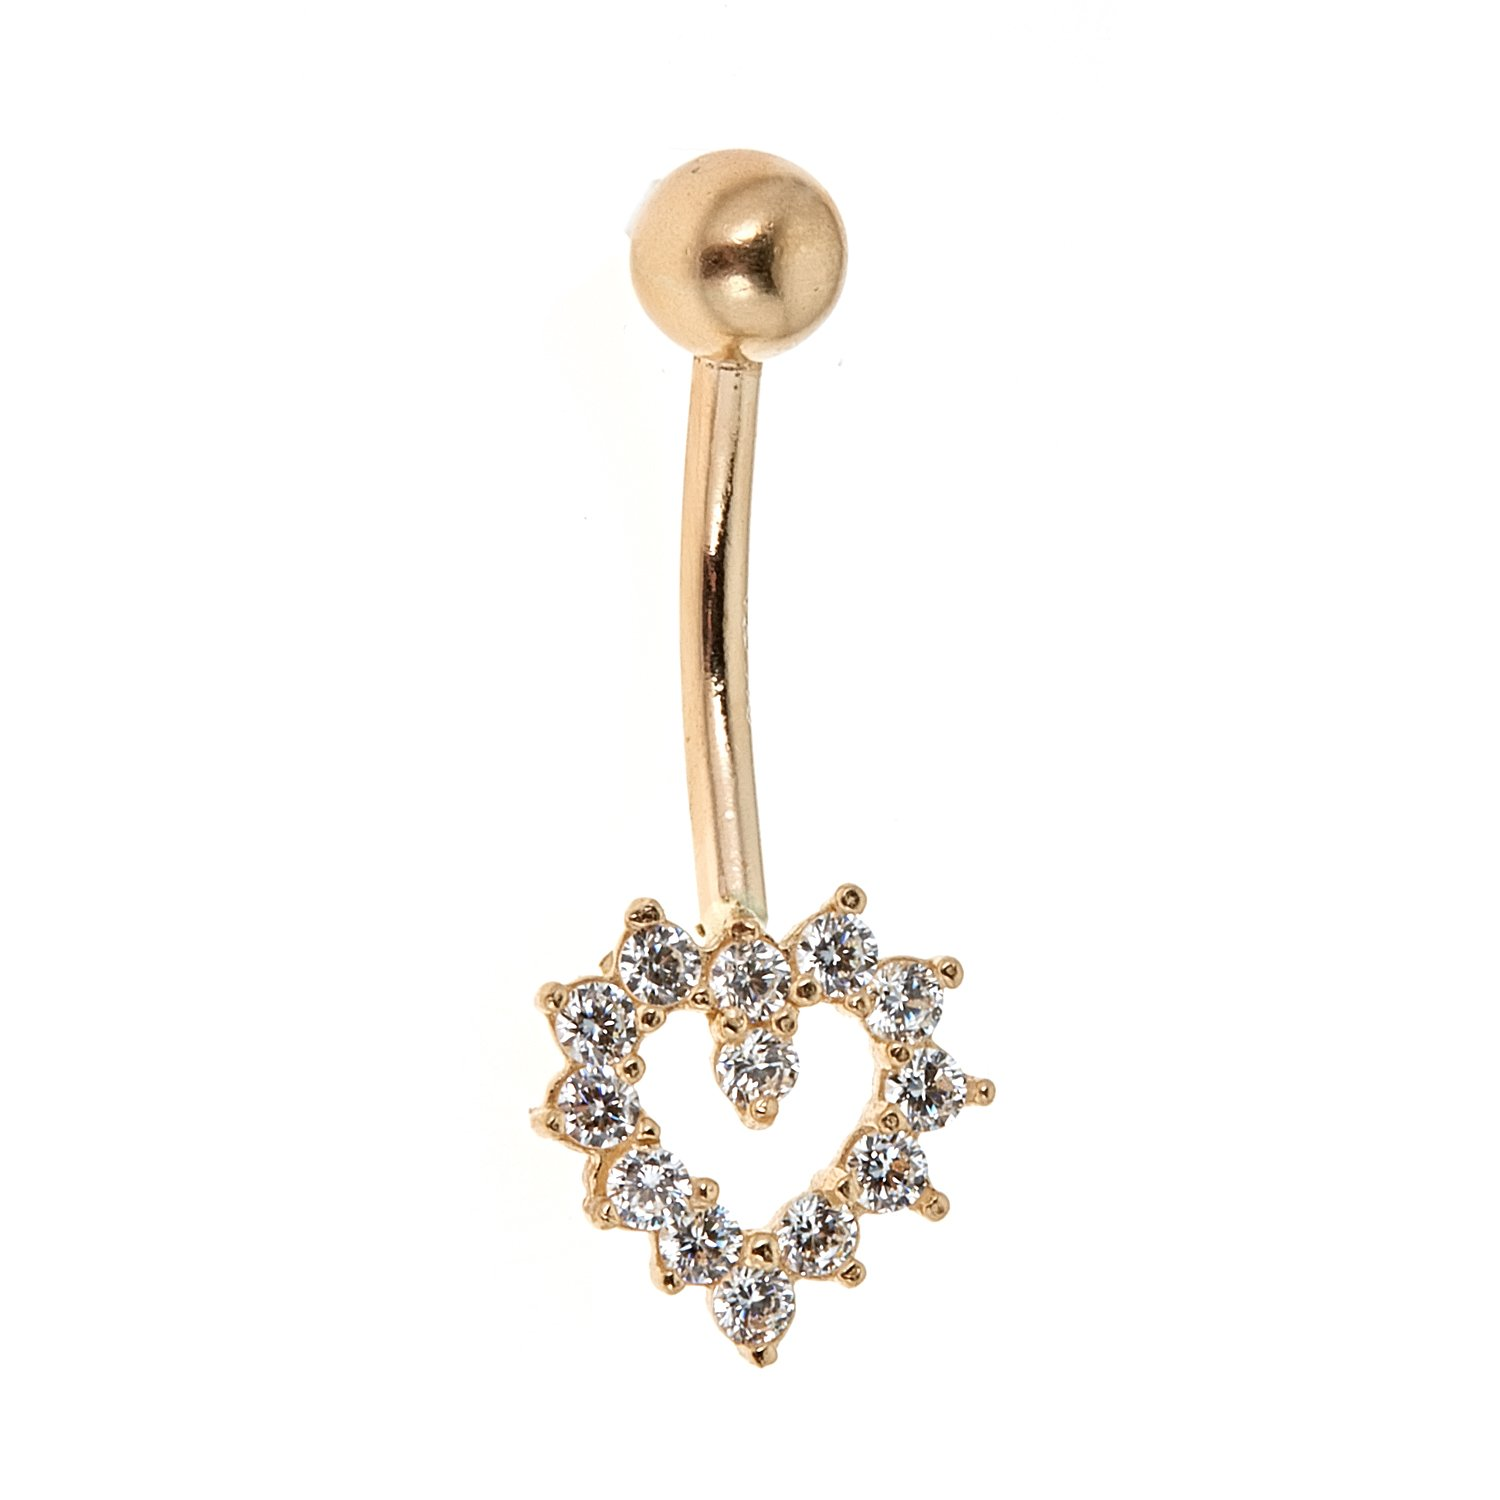 Ritastephens 14k Real Yellow Gold Cubic Zirconia Open Heart Belly Button Navel Ring Body Art